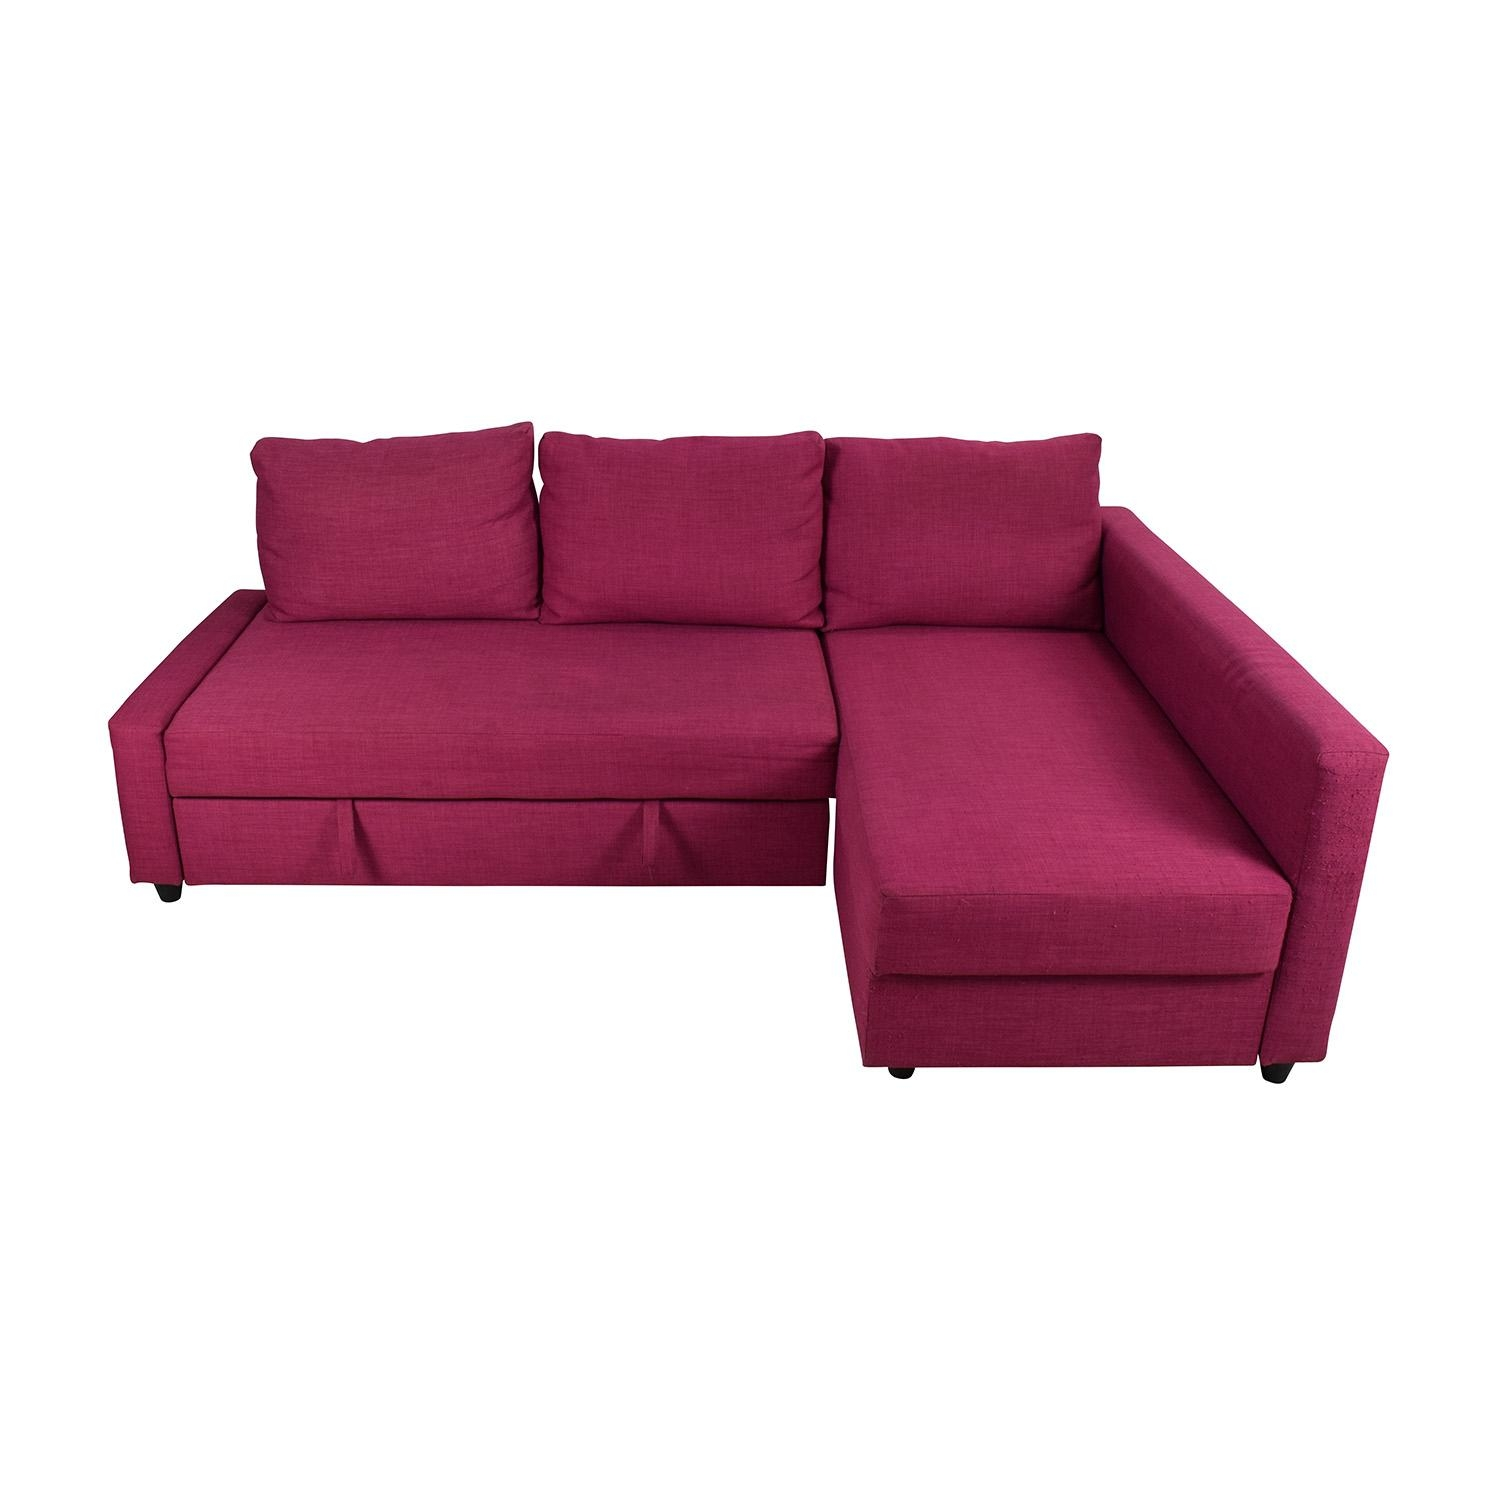 Furniture: Impressive Ikea Sleeper Sofas With Attractive Color With Red Sofa Beds Ikea (Image 11 of 20)